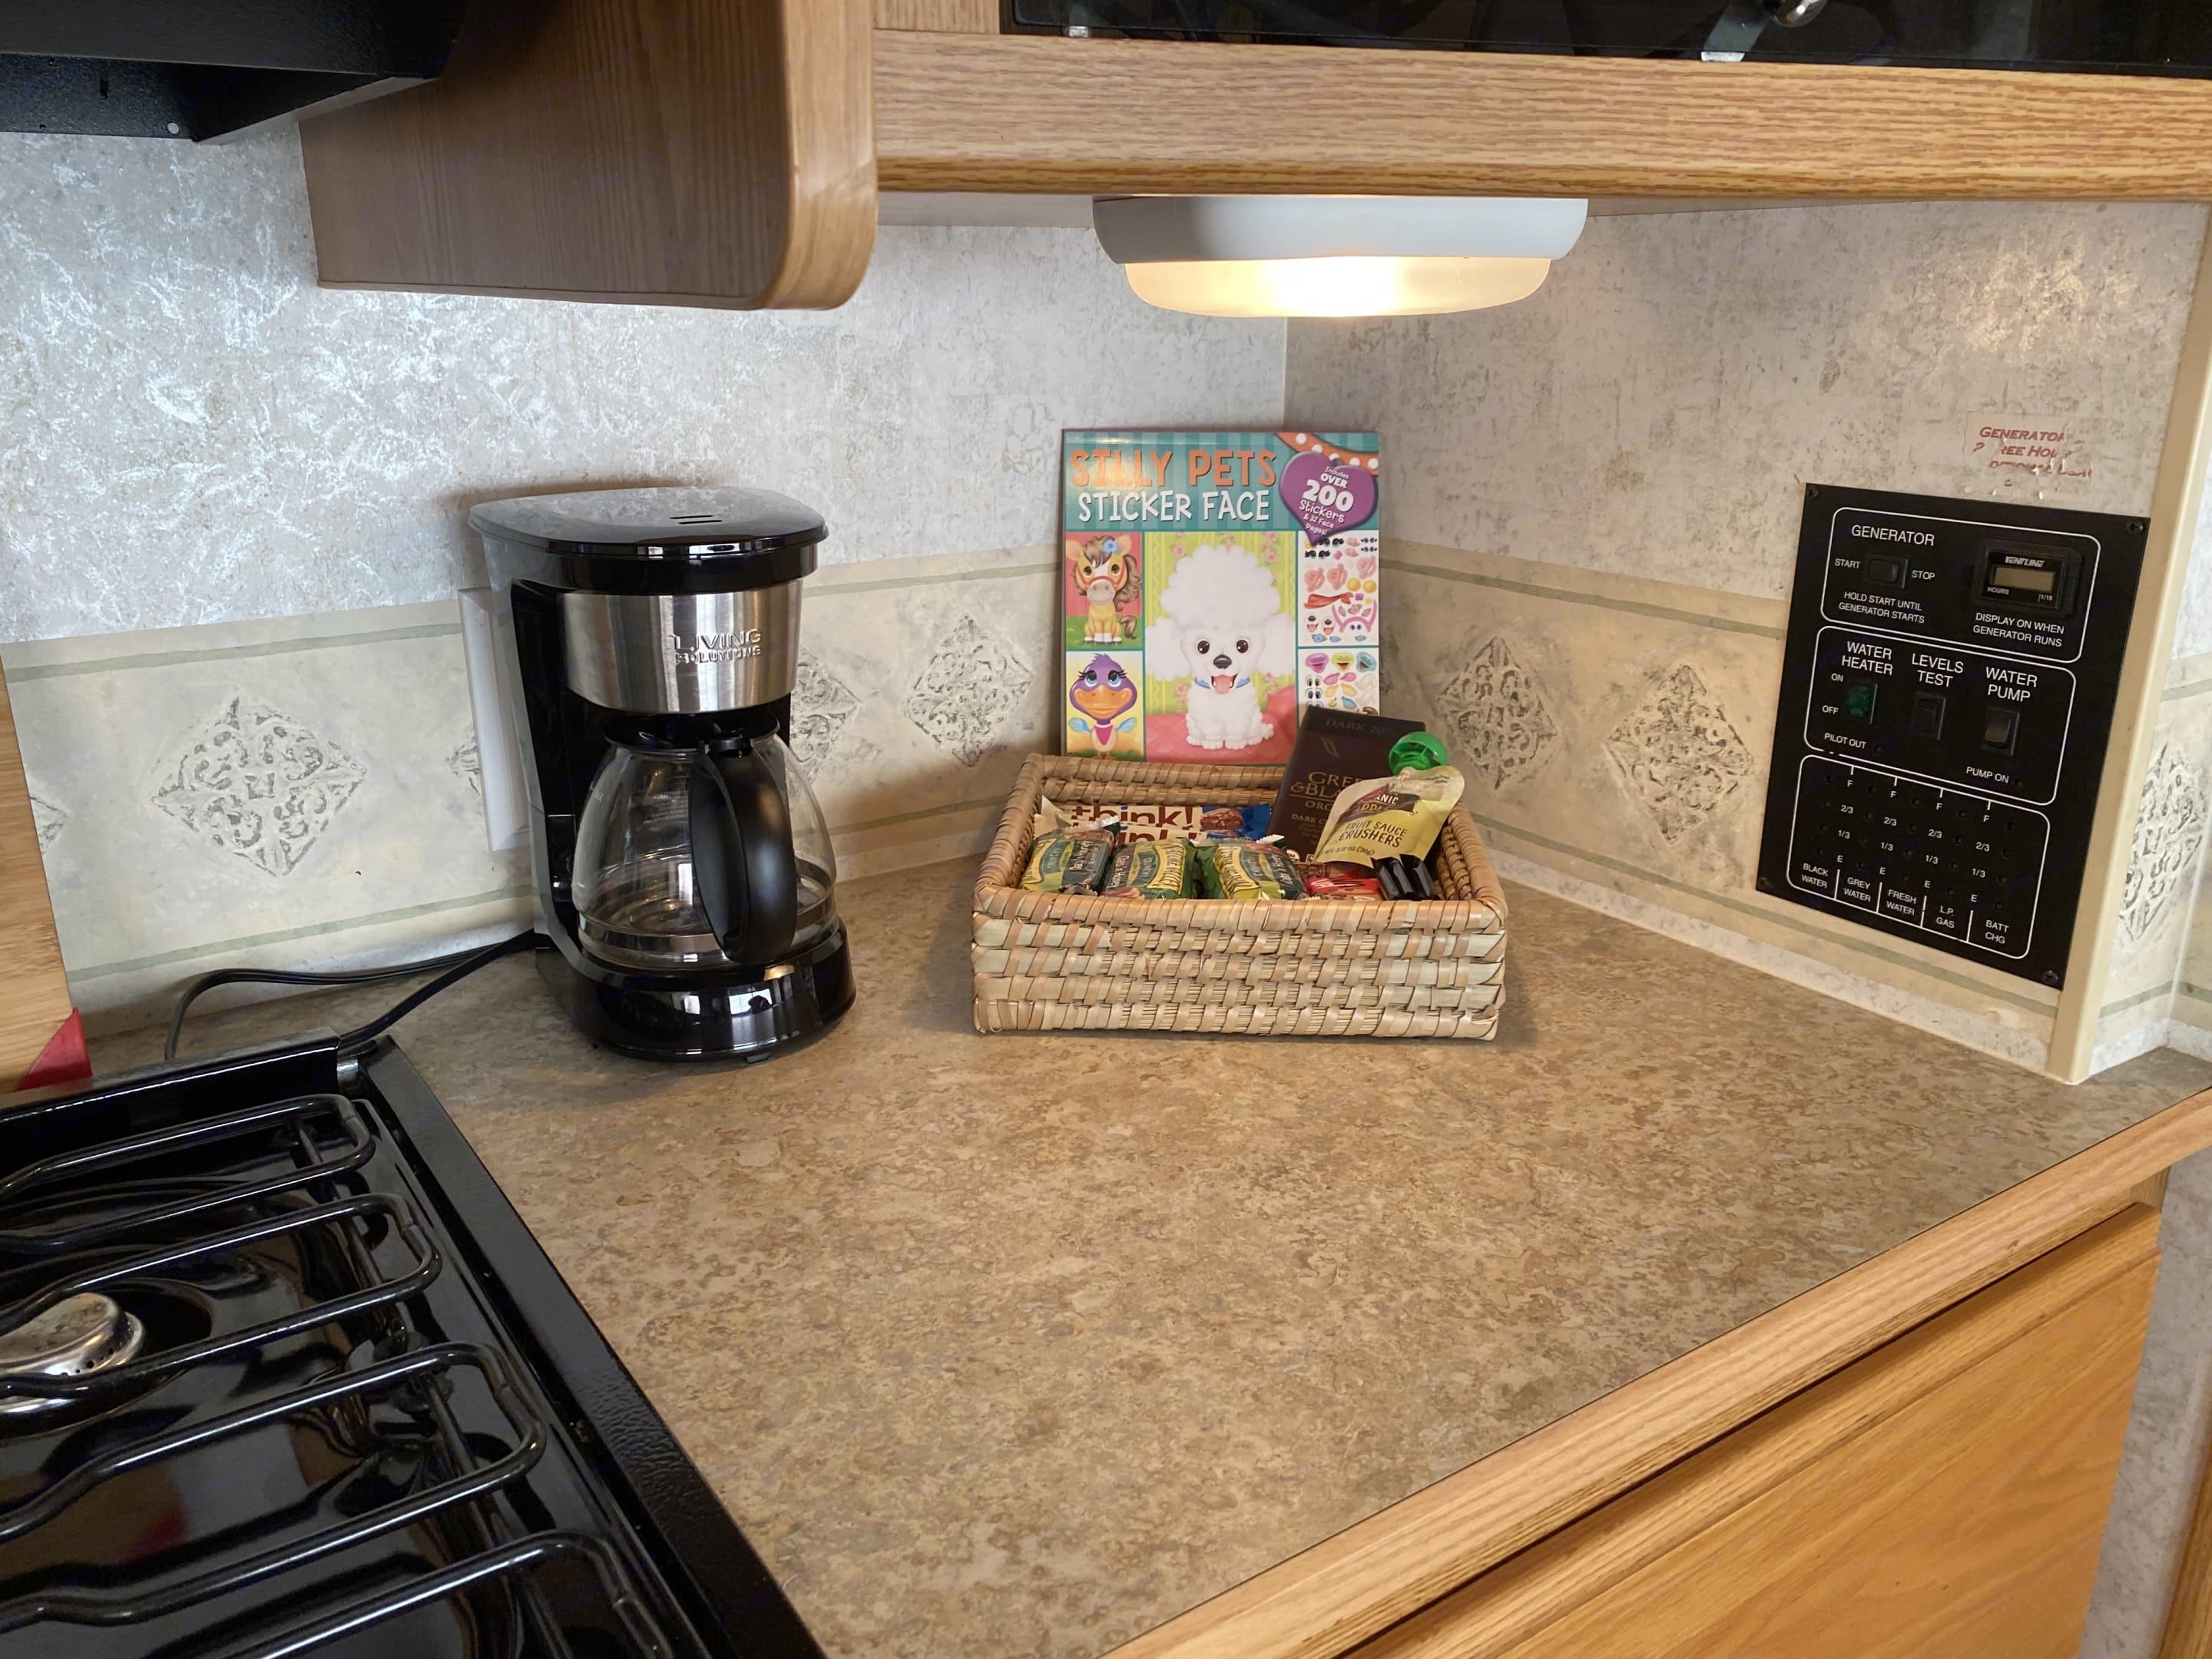 Tell us who is traveling and we'll add those special touches. Kids love bubbles & sticker books; moms love coffee...let us know!. Winnebago Outlook 2006